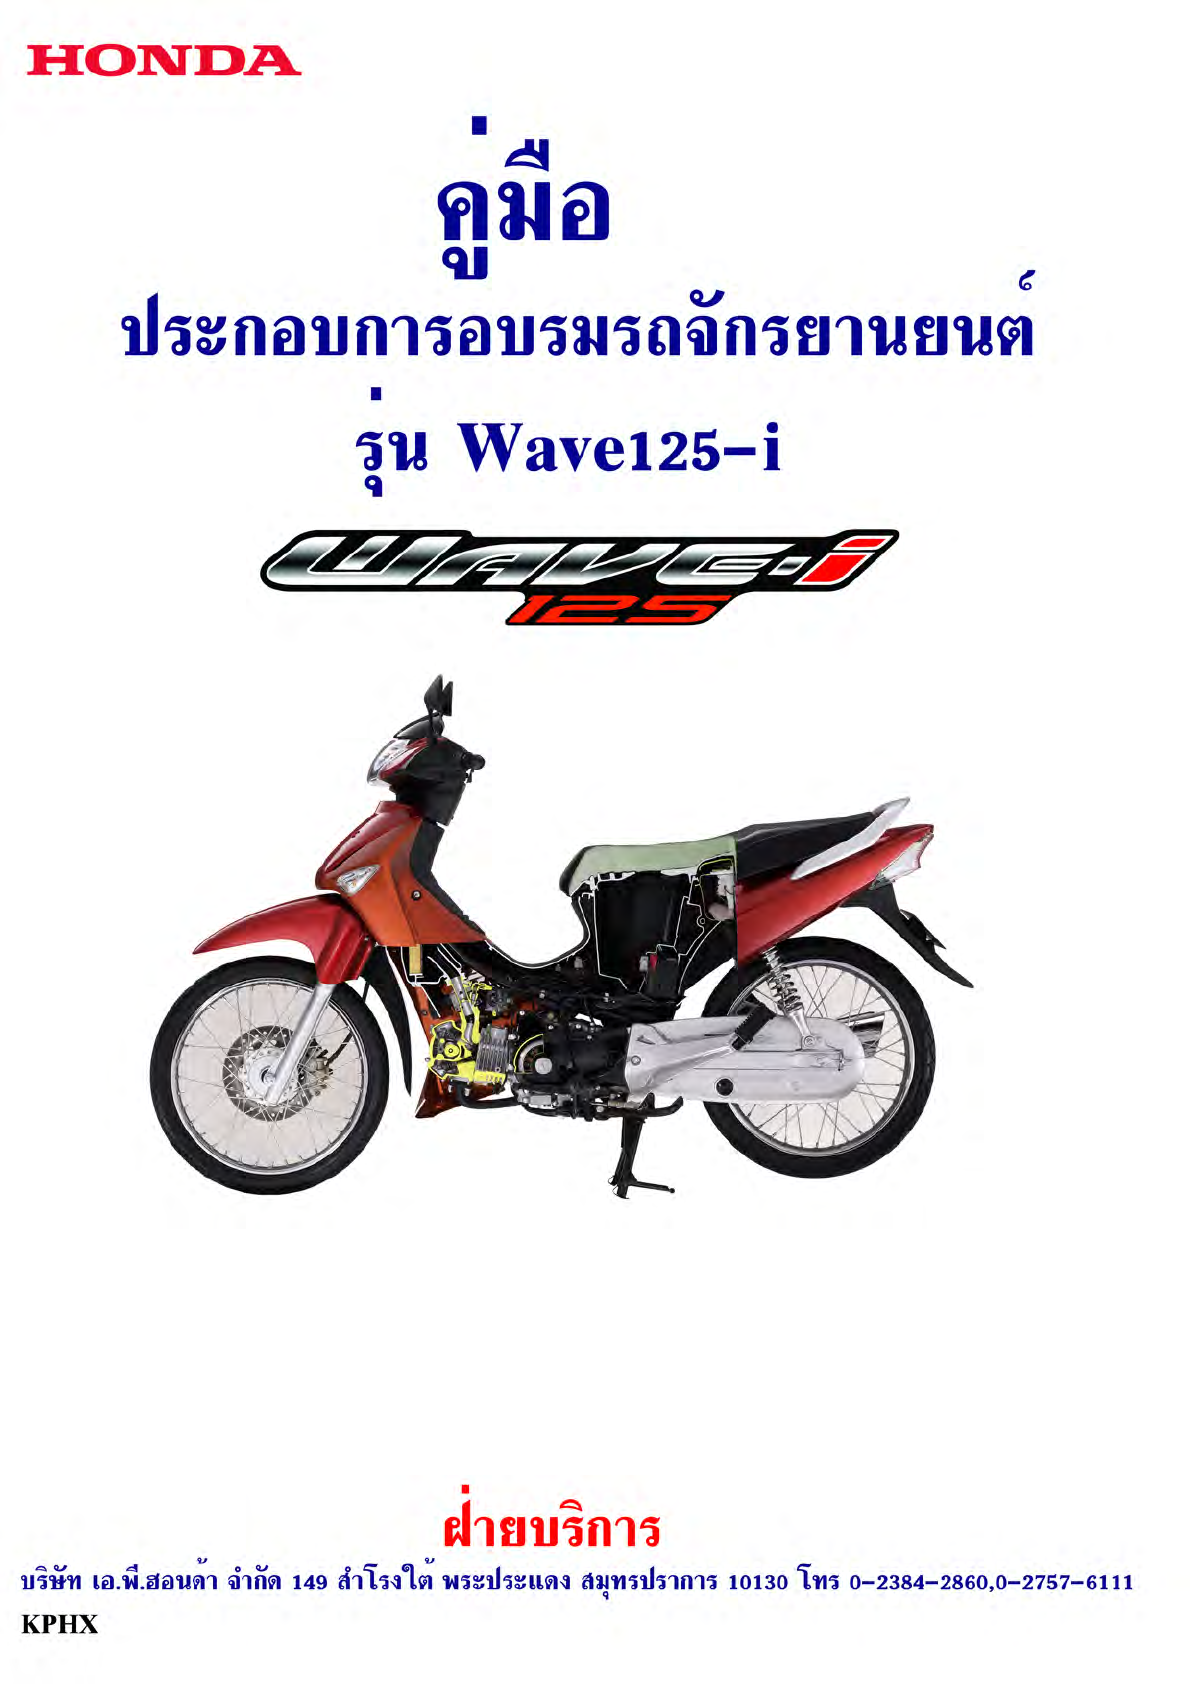 Honda Wave 125 Service Manual Pdf